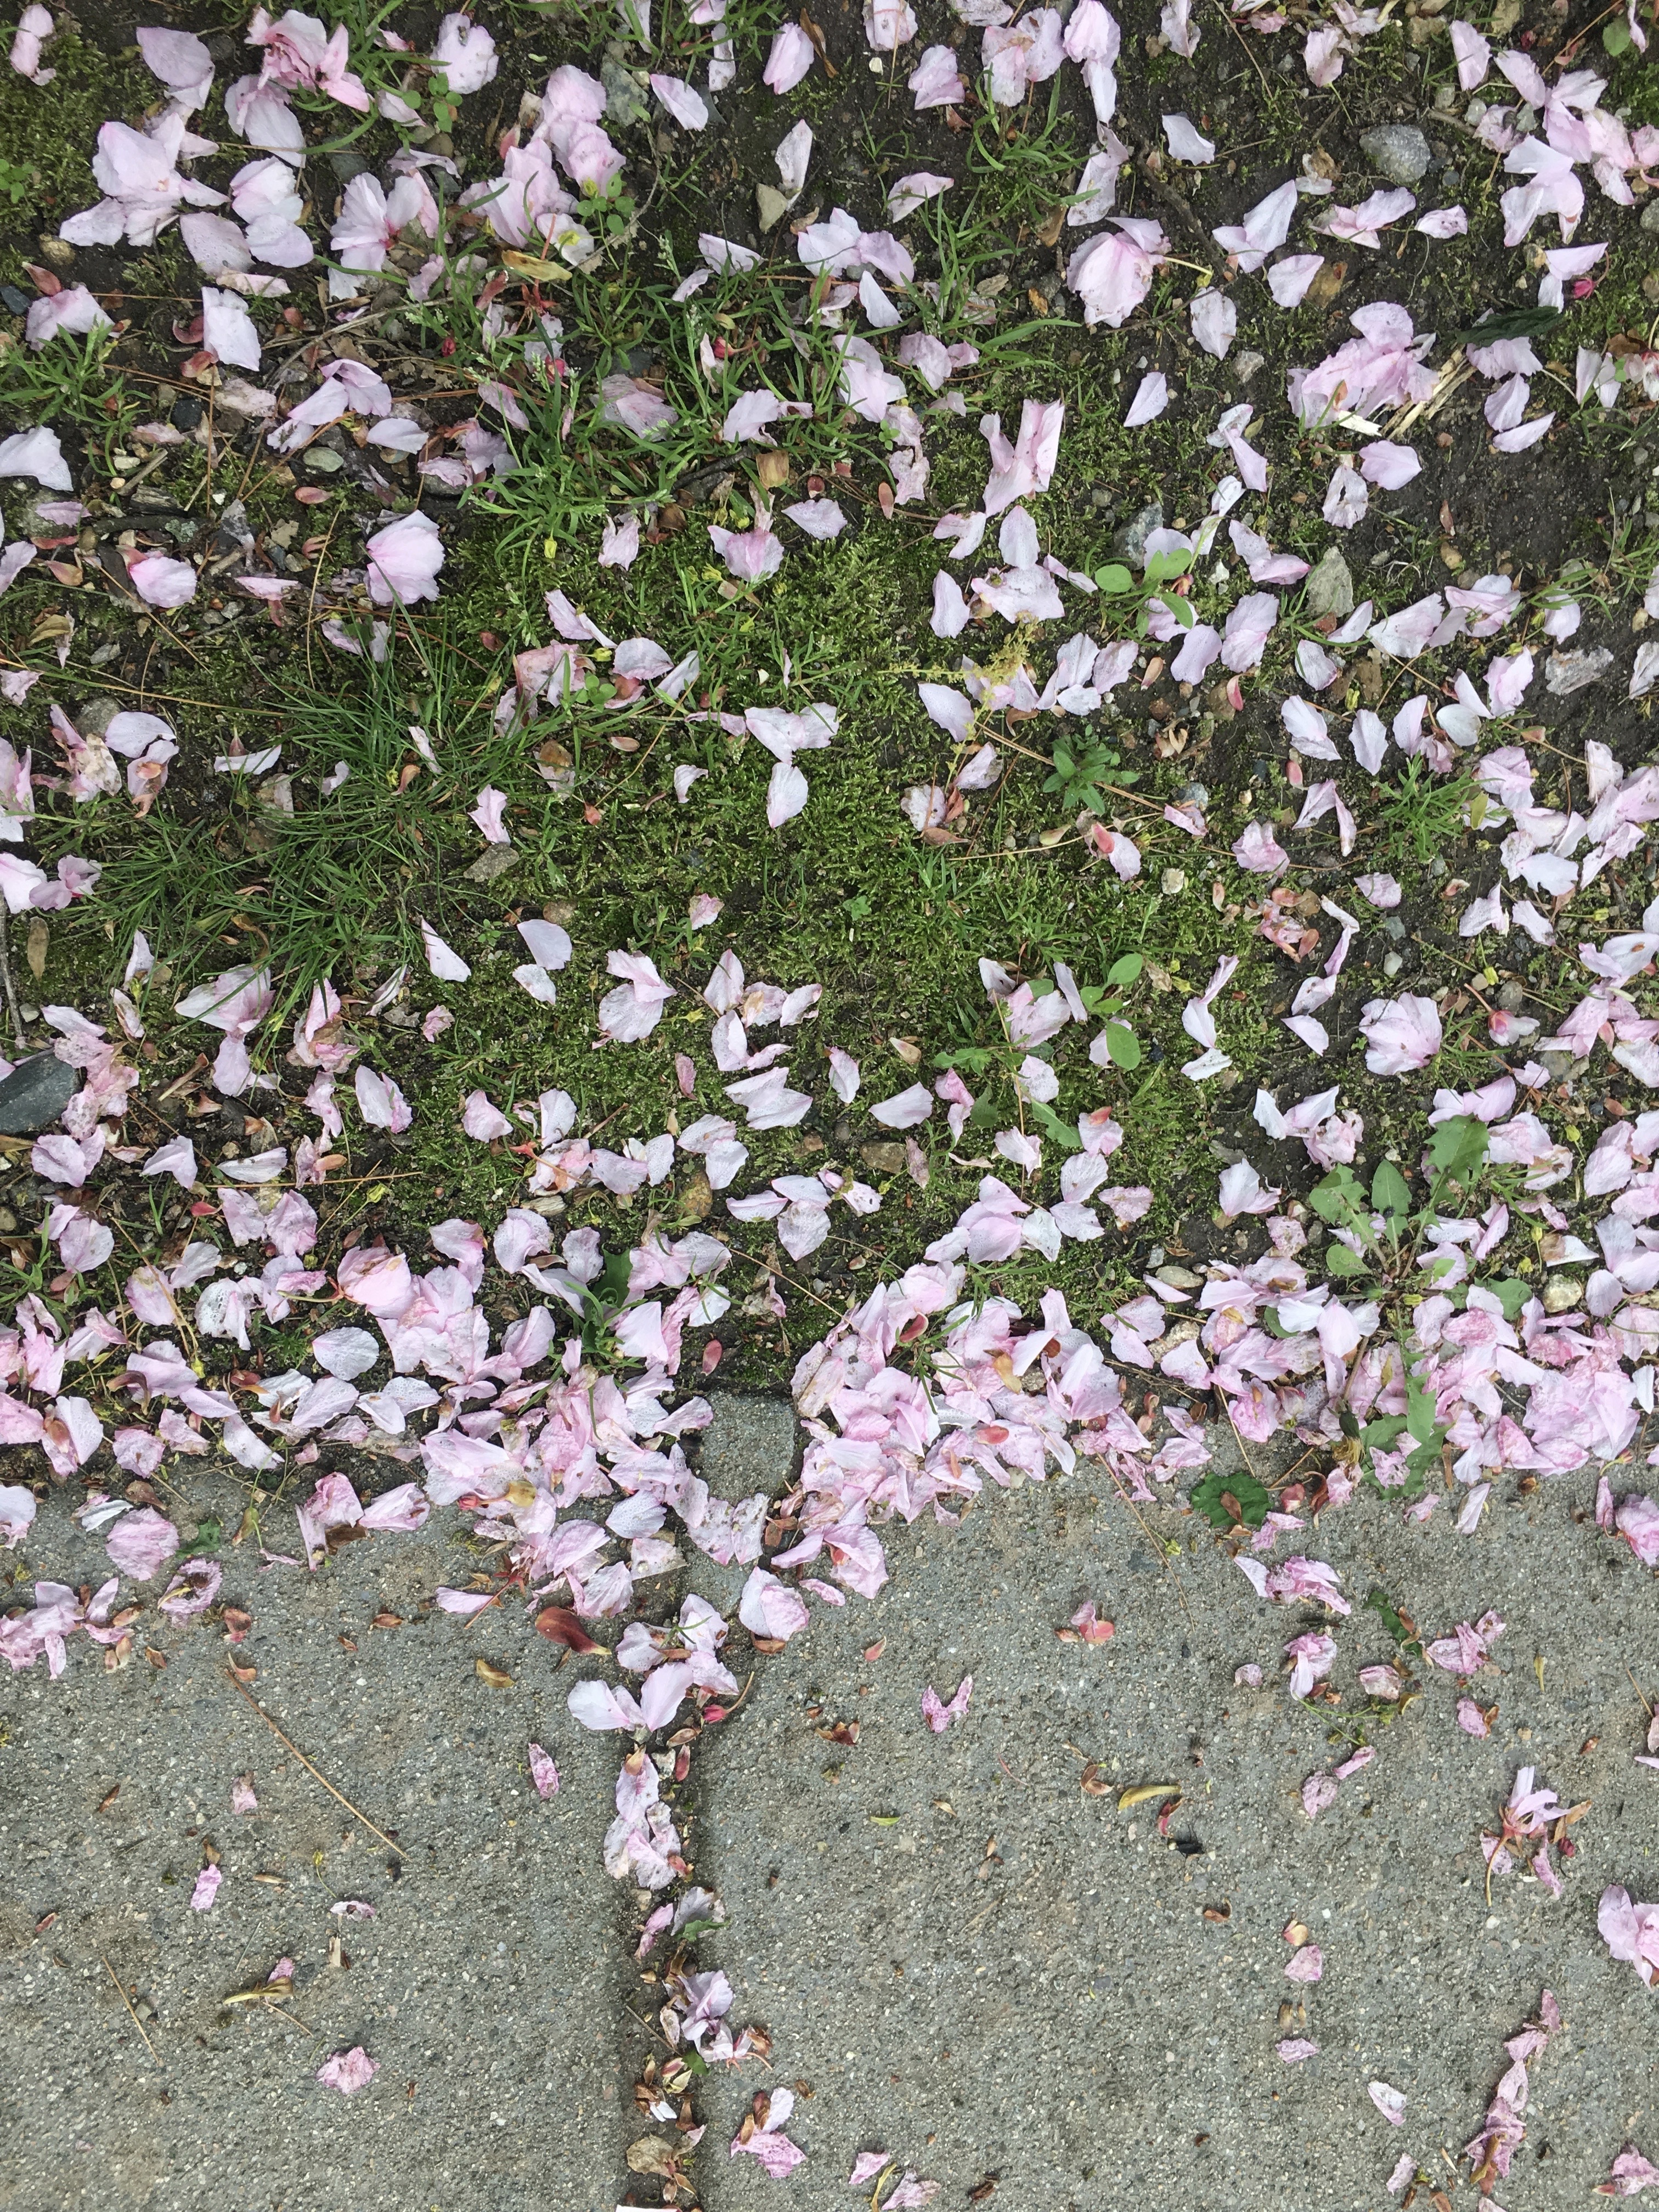 Fallen Cherry Blossom Petals on the grassy verge and sidewalk